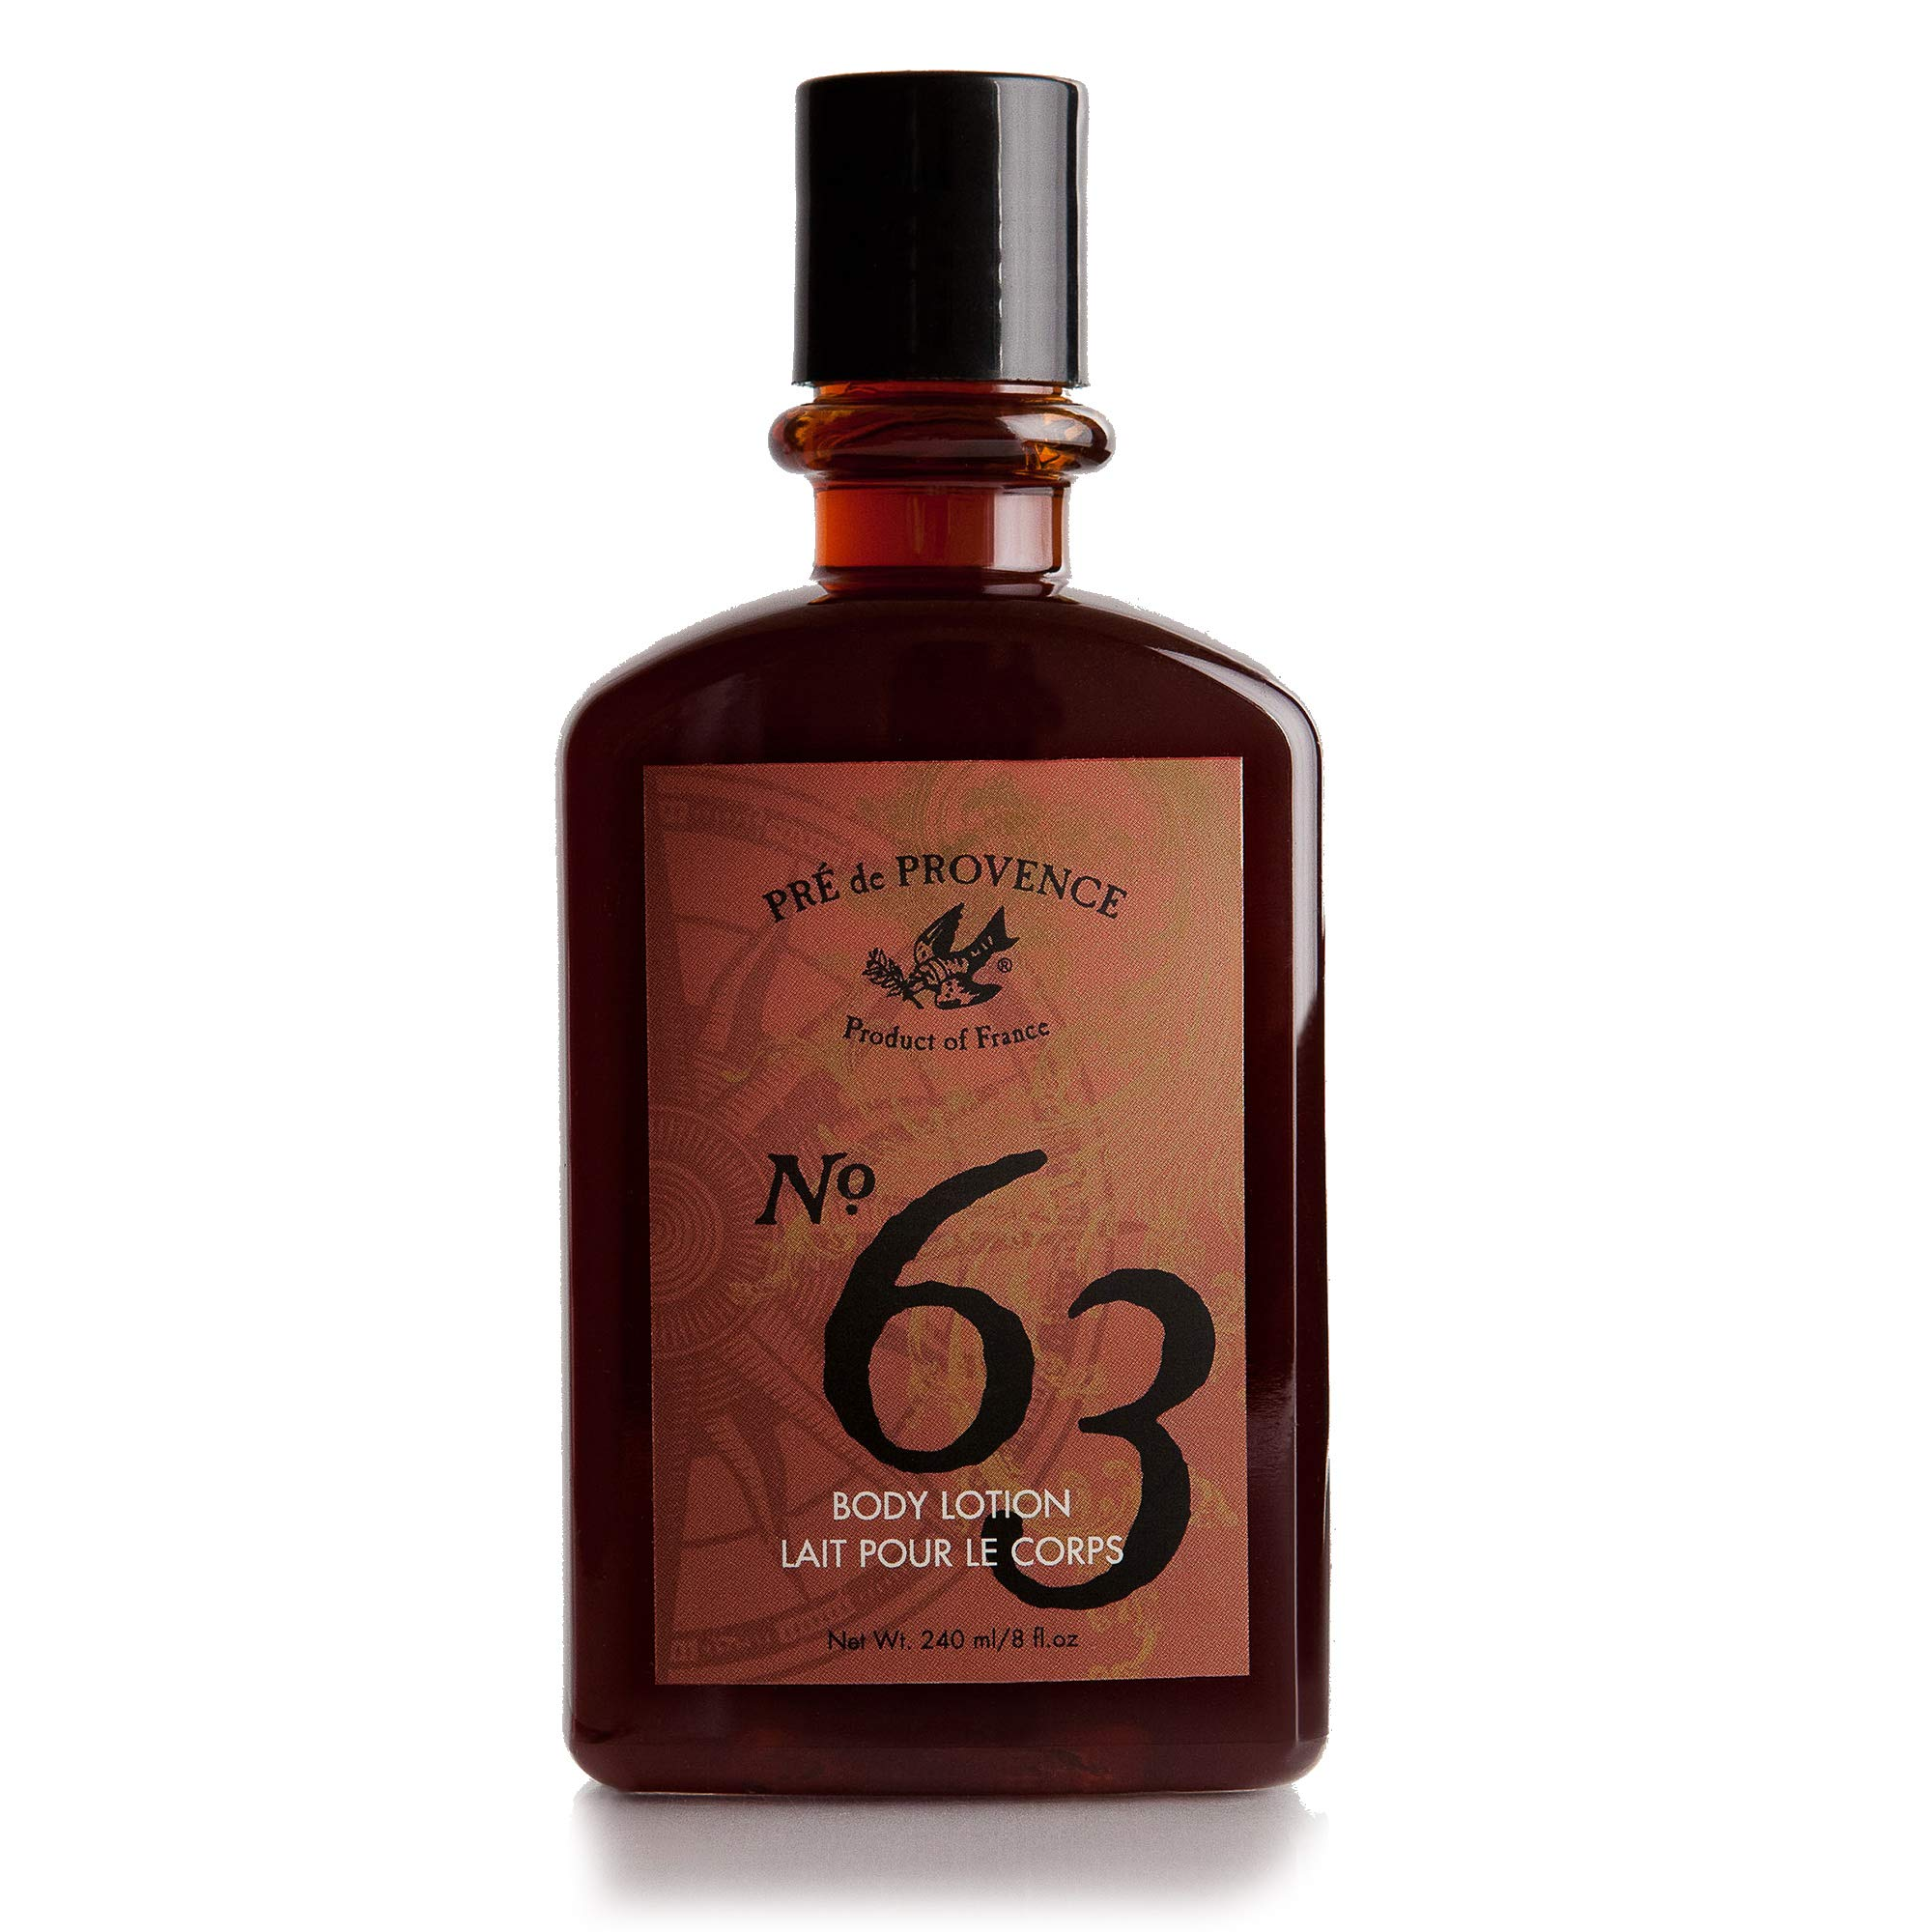 No. 63 Men's Lotion, Aromatic, Warm, Spicy Masculine Fragrance, Enriched With Natural & Repairing Shea Butter & Aloe Vera (8 fl oz) by Pre de Provence